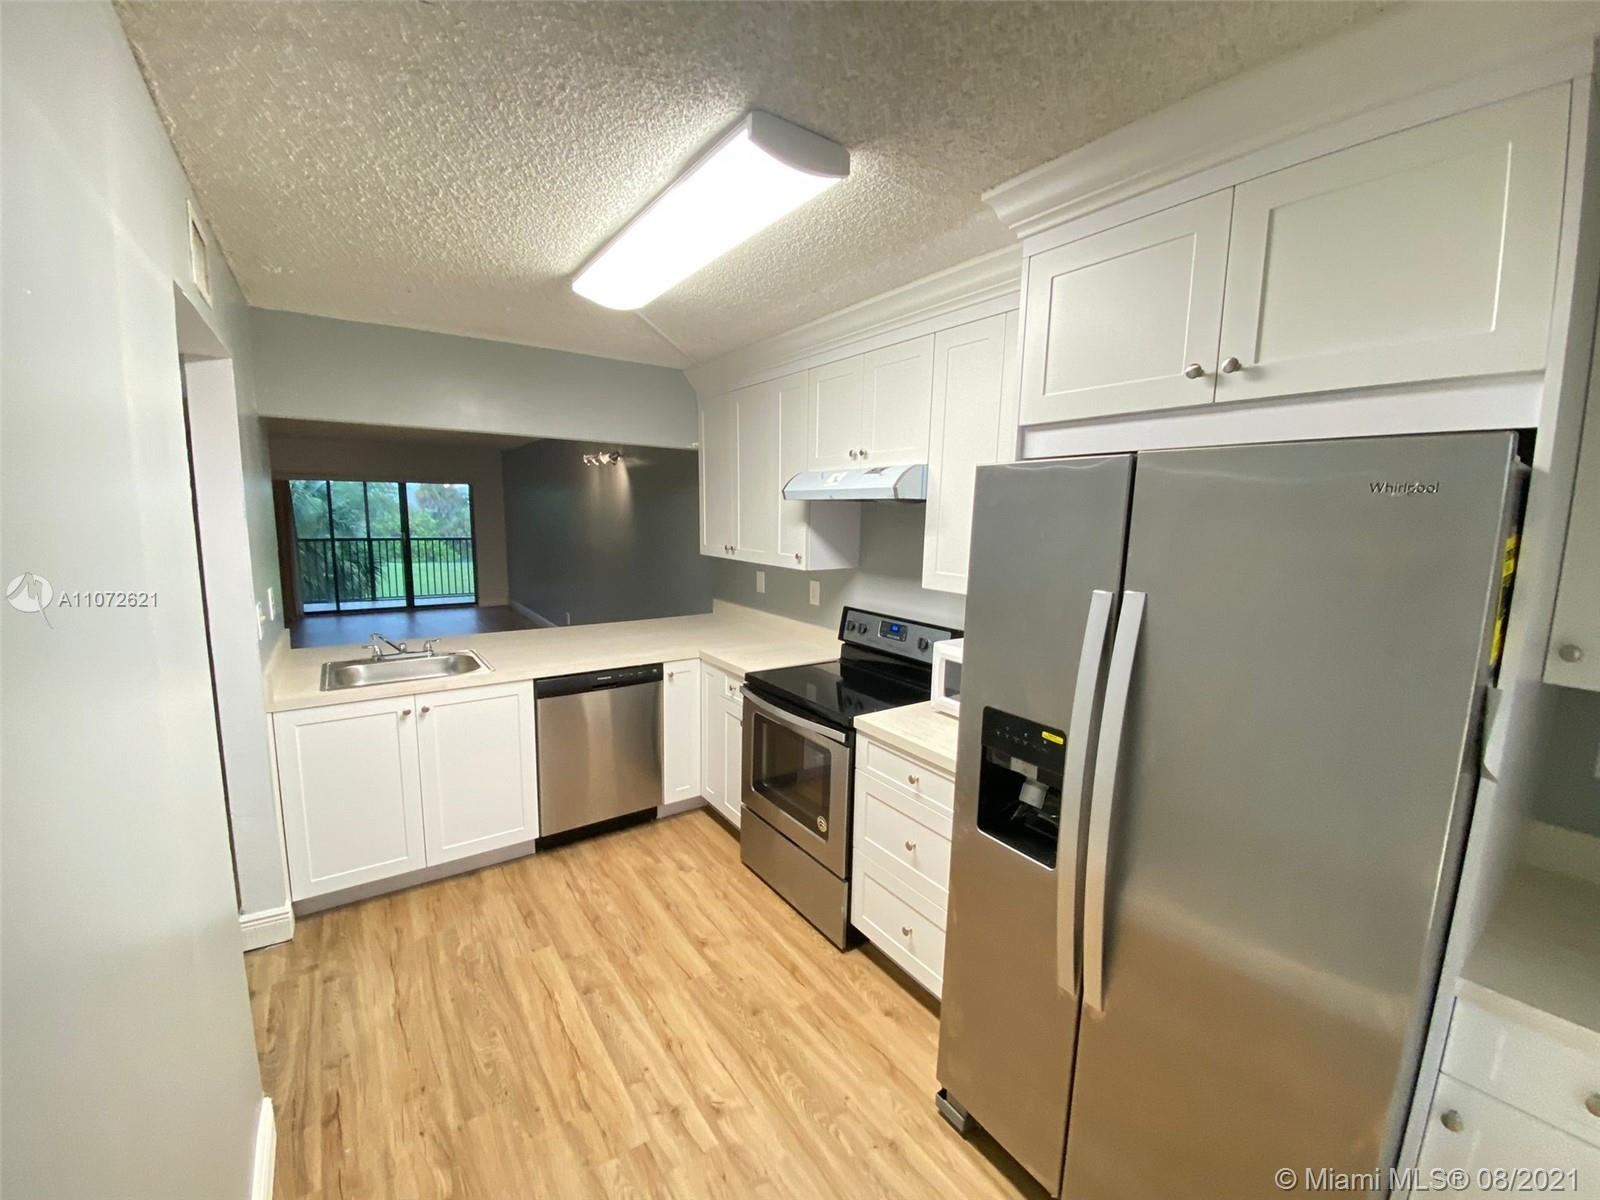 1200 NW 80 Ave #202A, Margate, FL 33063 - #: A11072621